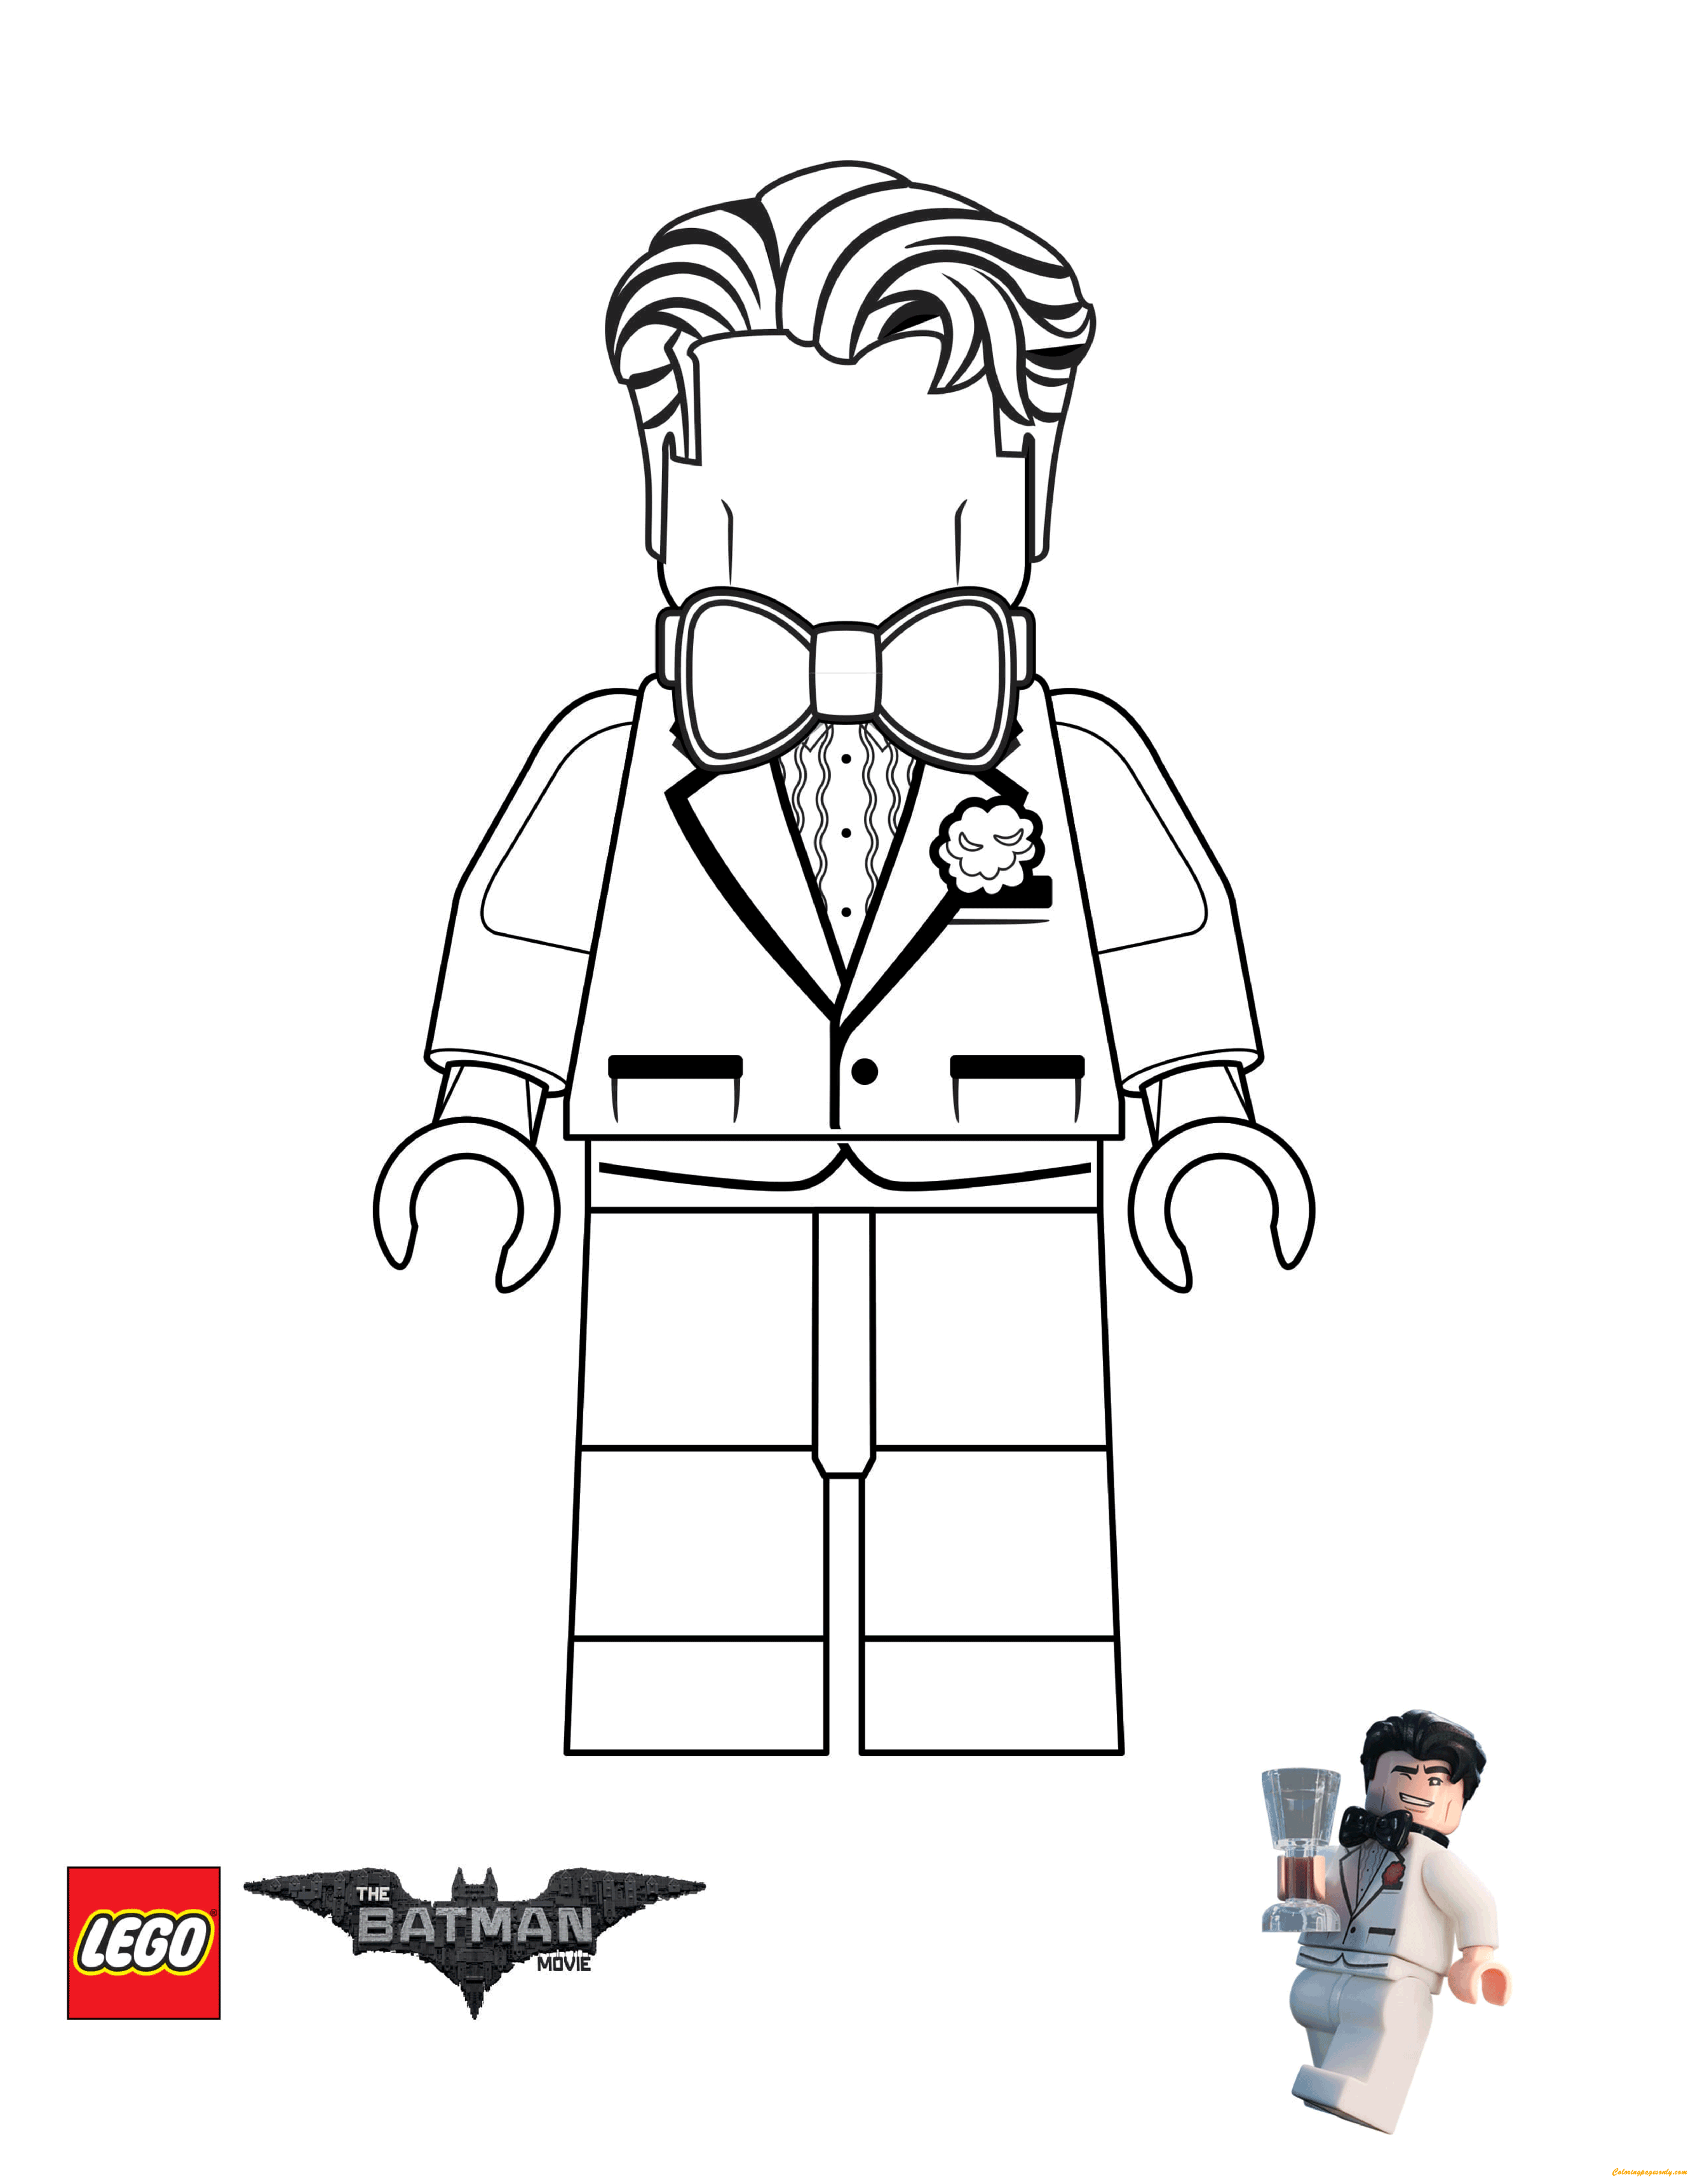 Bruce Wayne from Lego Batman Movie